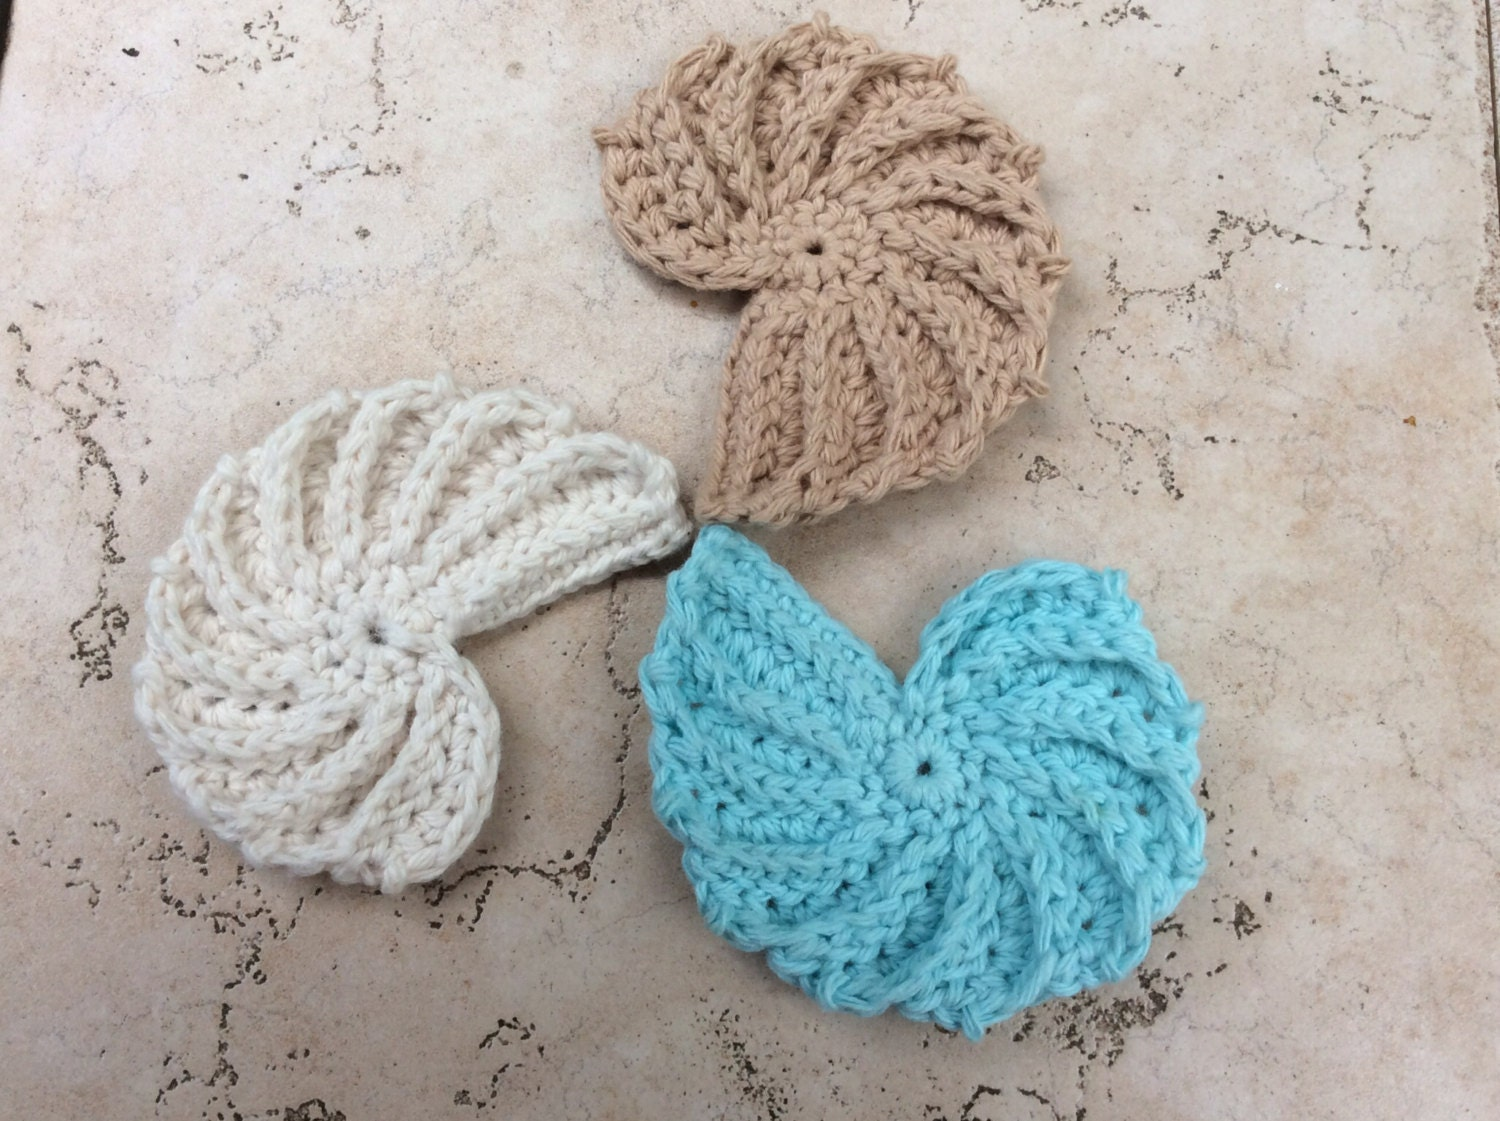 Seashell Knitting Pattern : CROCHET PATTERN seashell, PDF seashell pattern, coaster seashell, textured se...